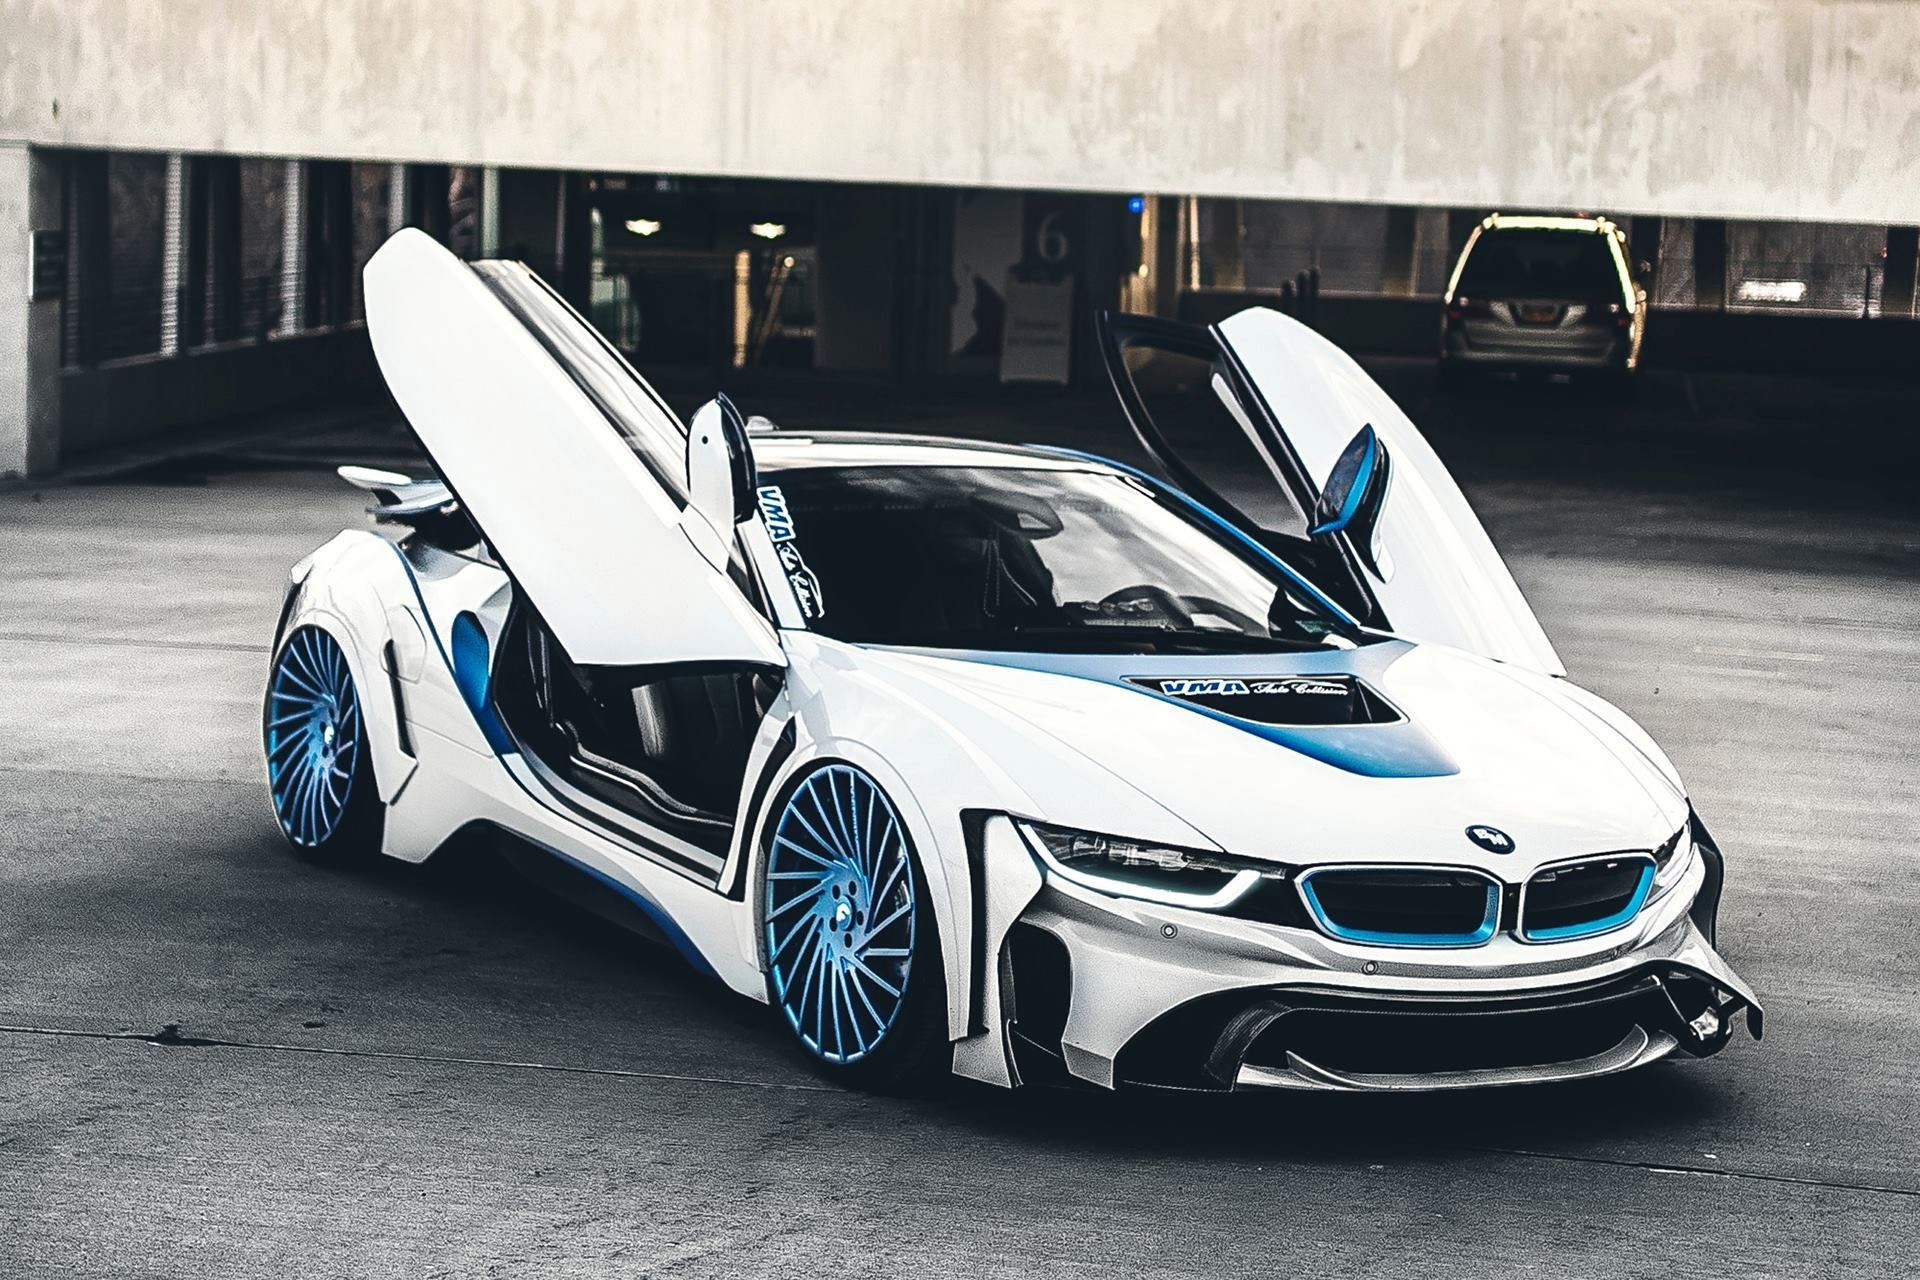 Spaceship In The Form Of The Car Custom White Bmw I8 With Blue Accents Bmw I8 Bmw Bmw White